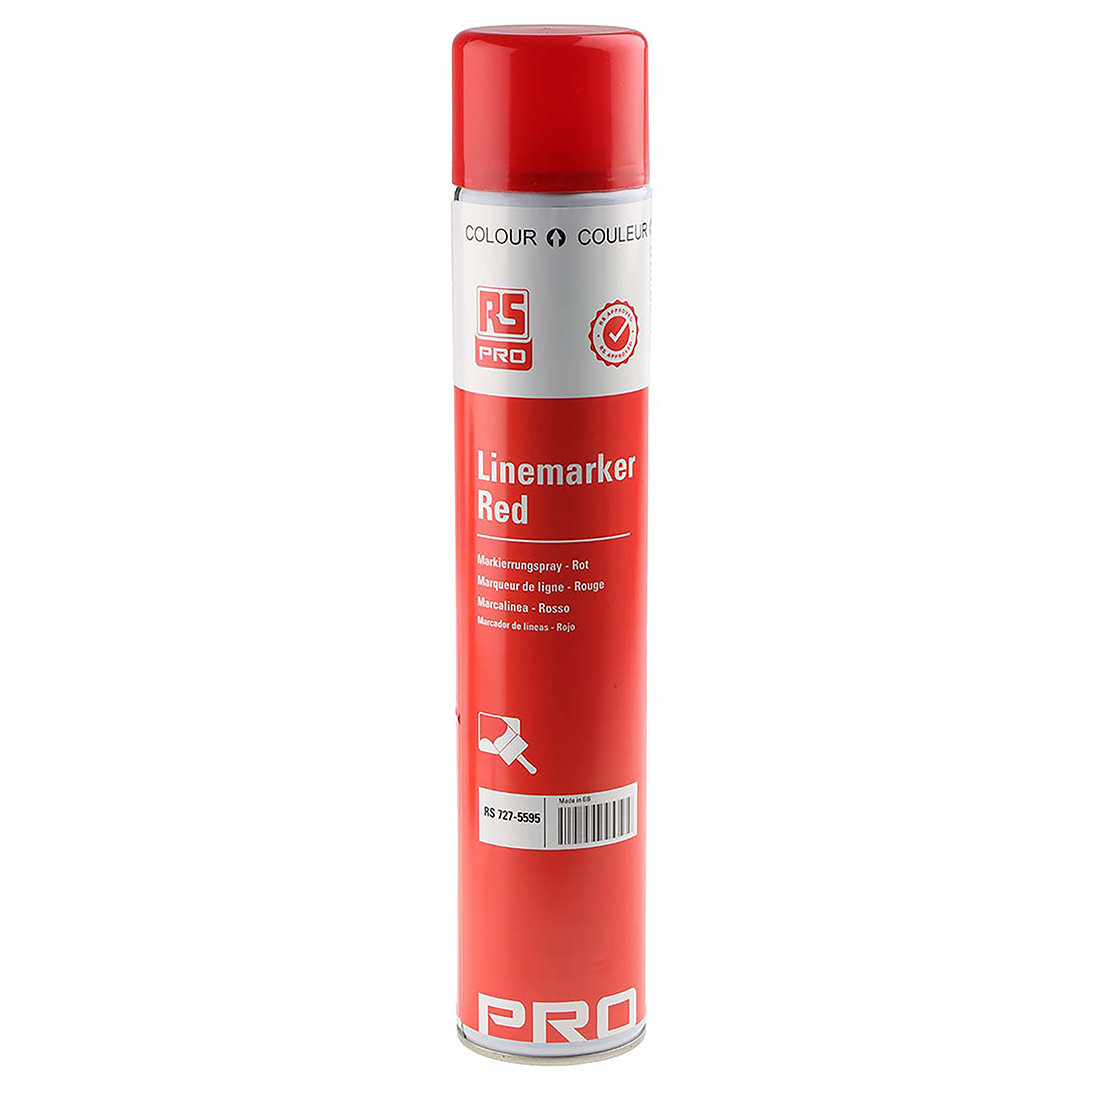 RS PRO 750ml Red Line Marker Spray